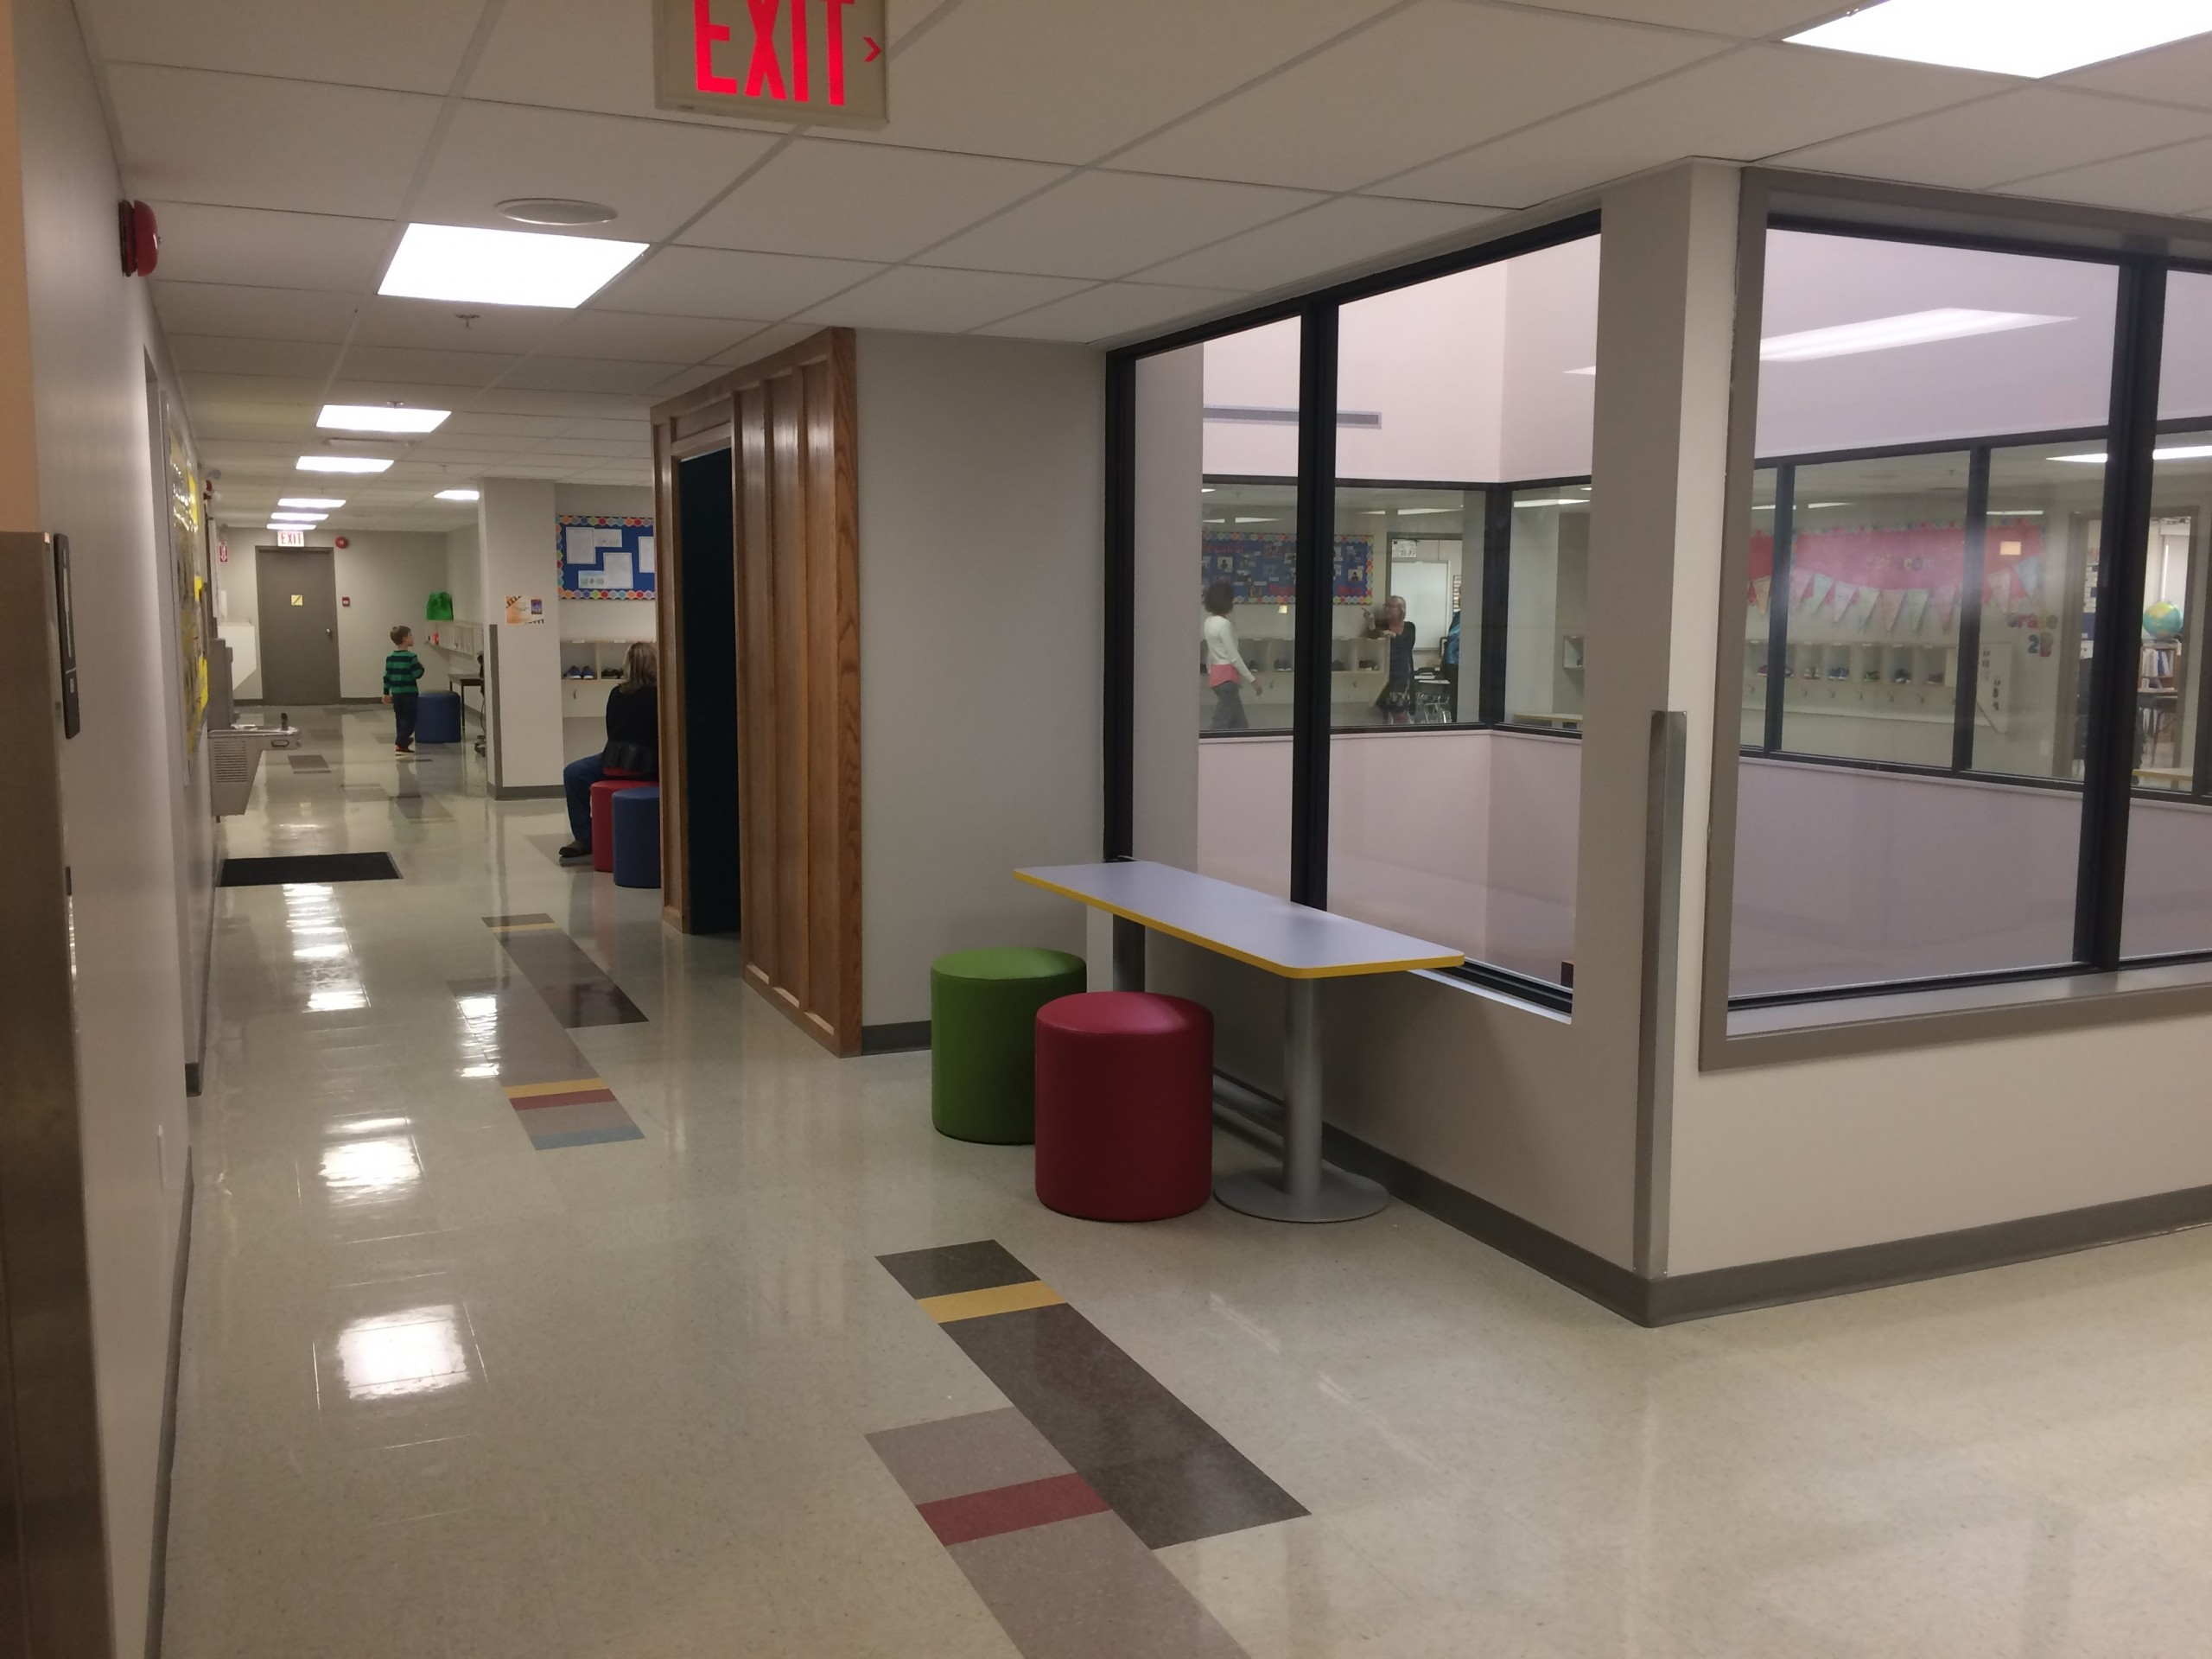 Junior high corridor around a central atrium for improved access to natural light, with colourful furniture and floor patterns.